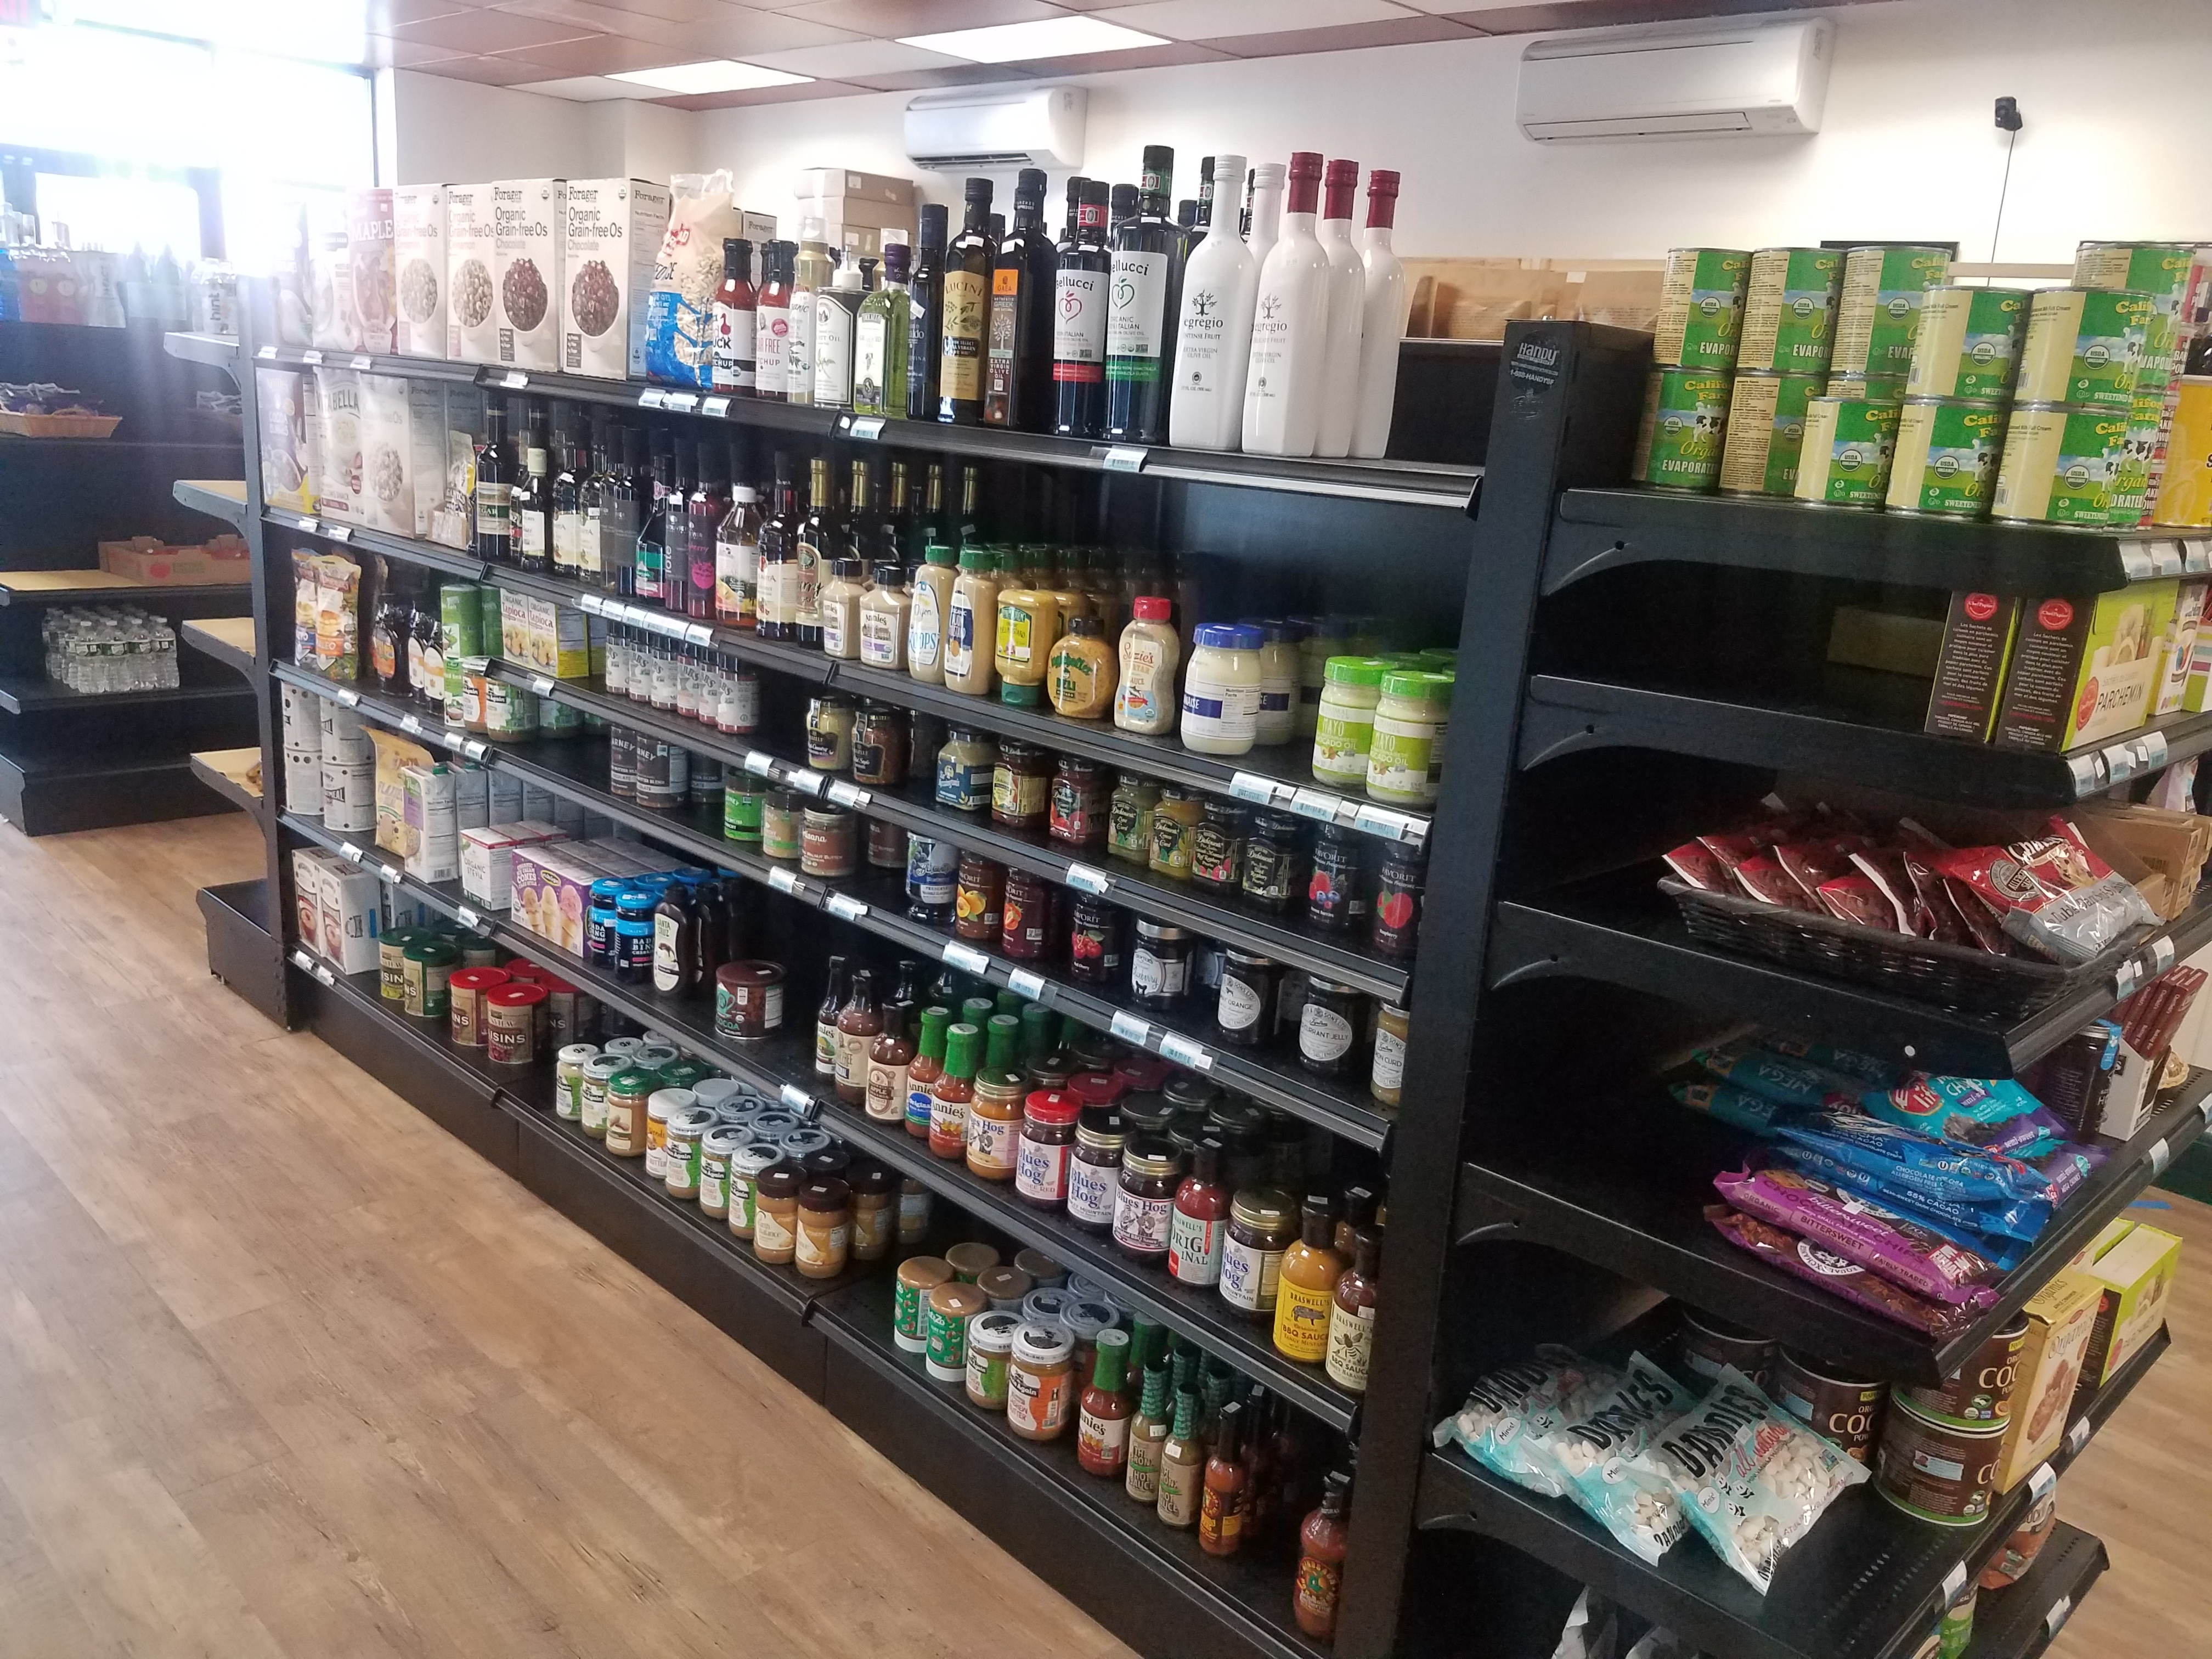 A photo of black shelves, holding various cooking oils, breakfast cereals, nut butters, and jams, as well as baking goods.